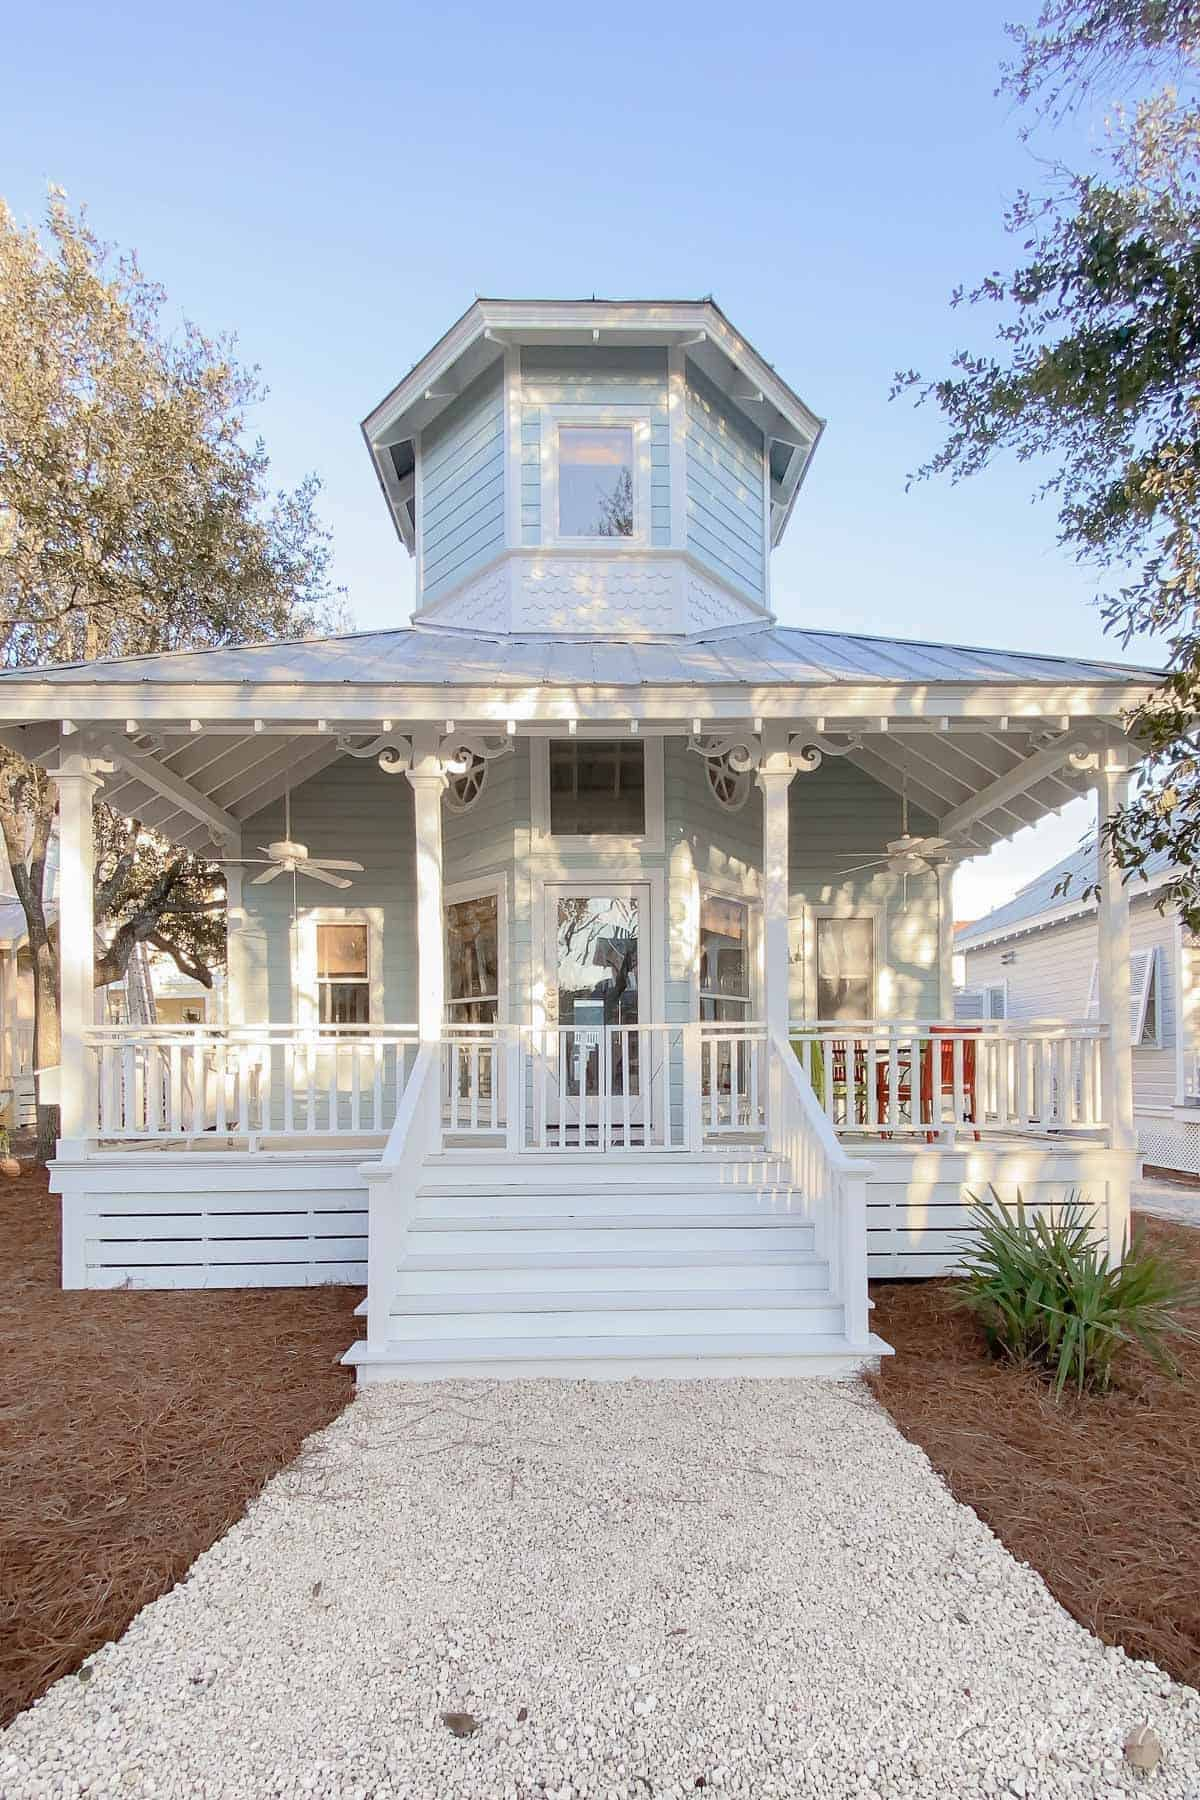 A charming pale blue beach house with a white front porch in Seaside Florida